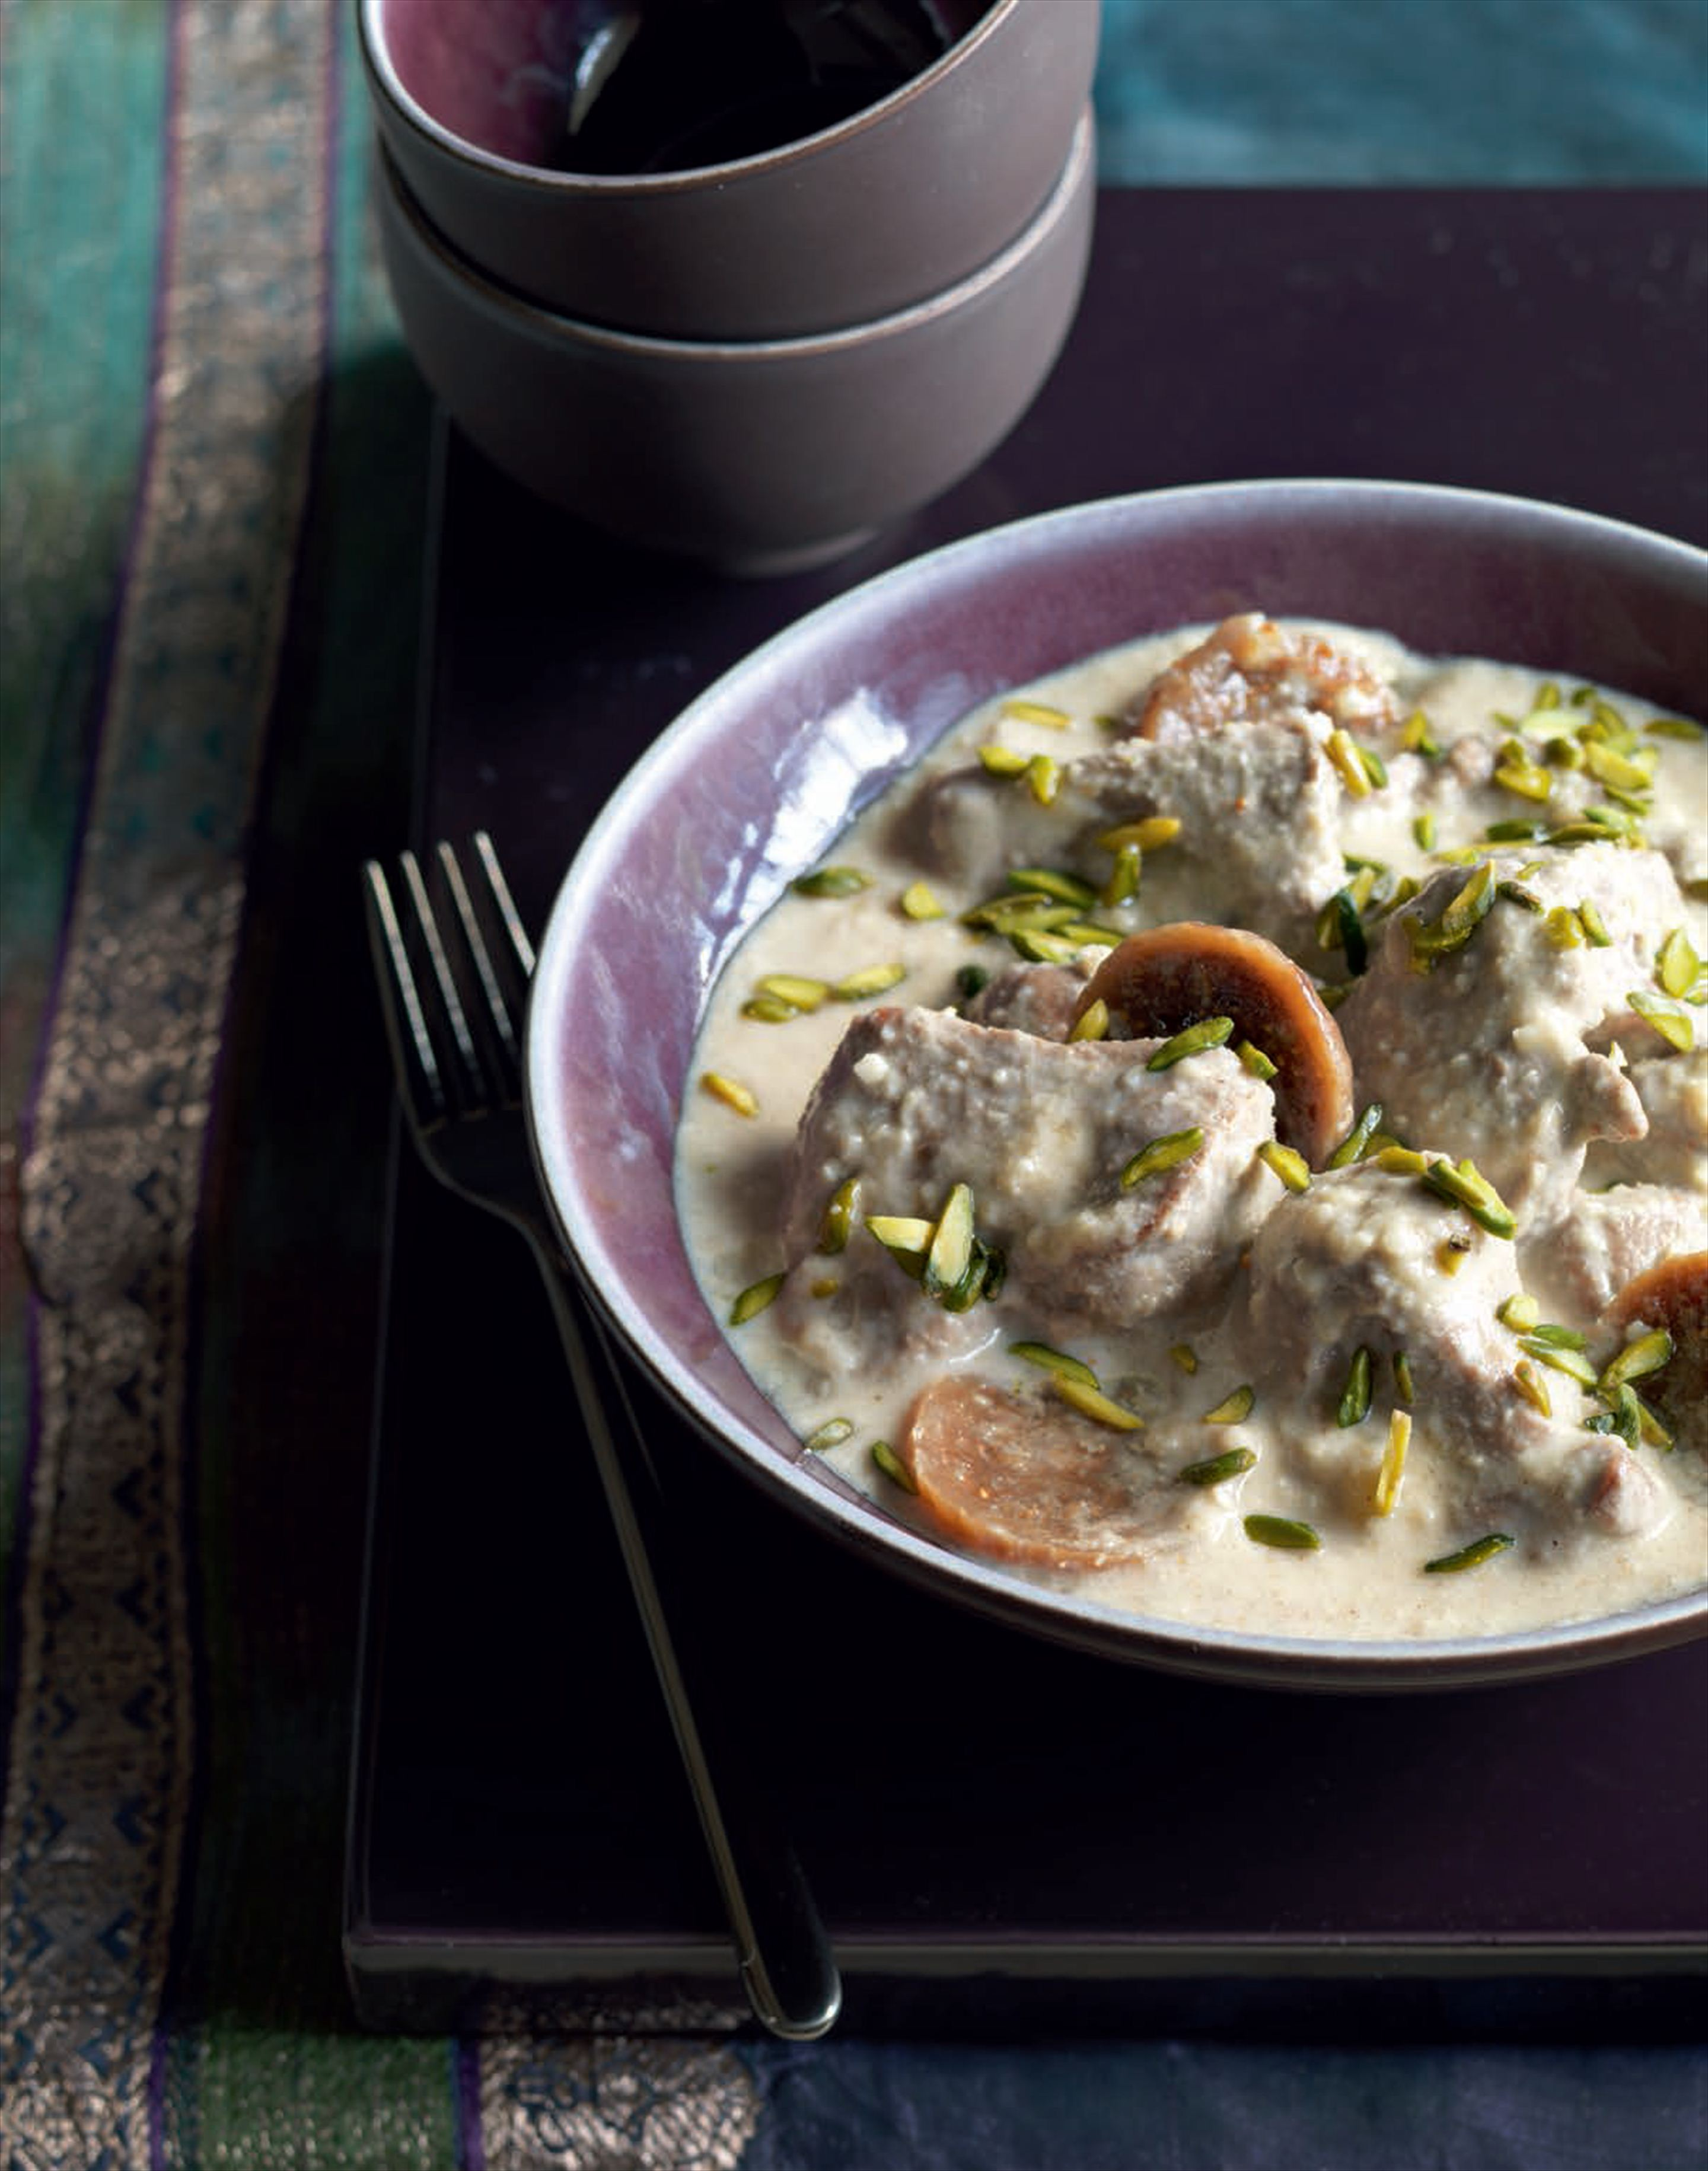 Creamy, nutty lamb curry with dried figs